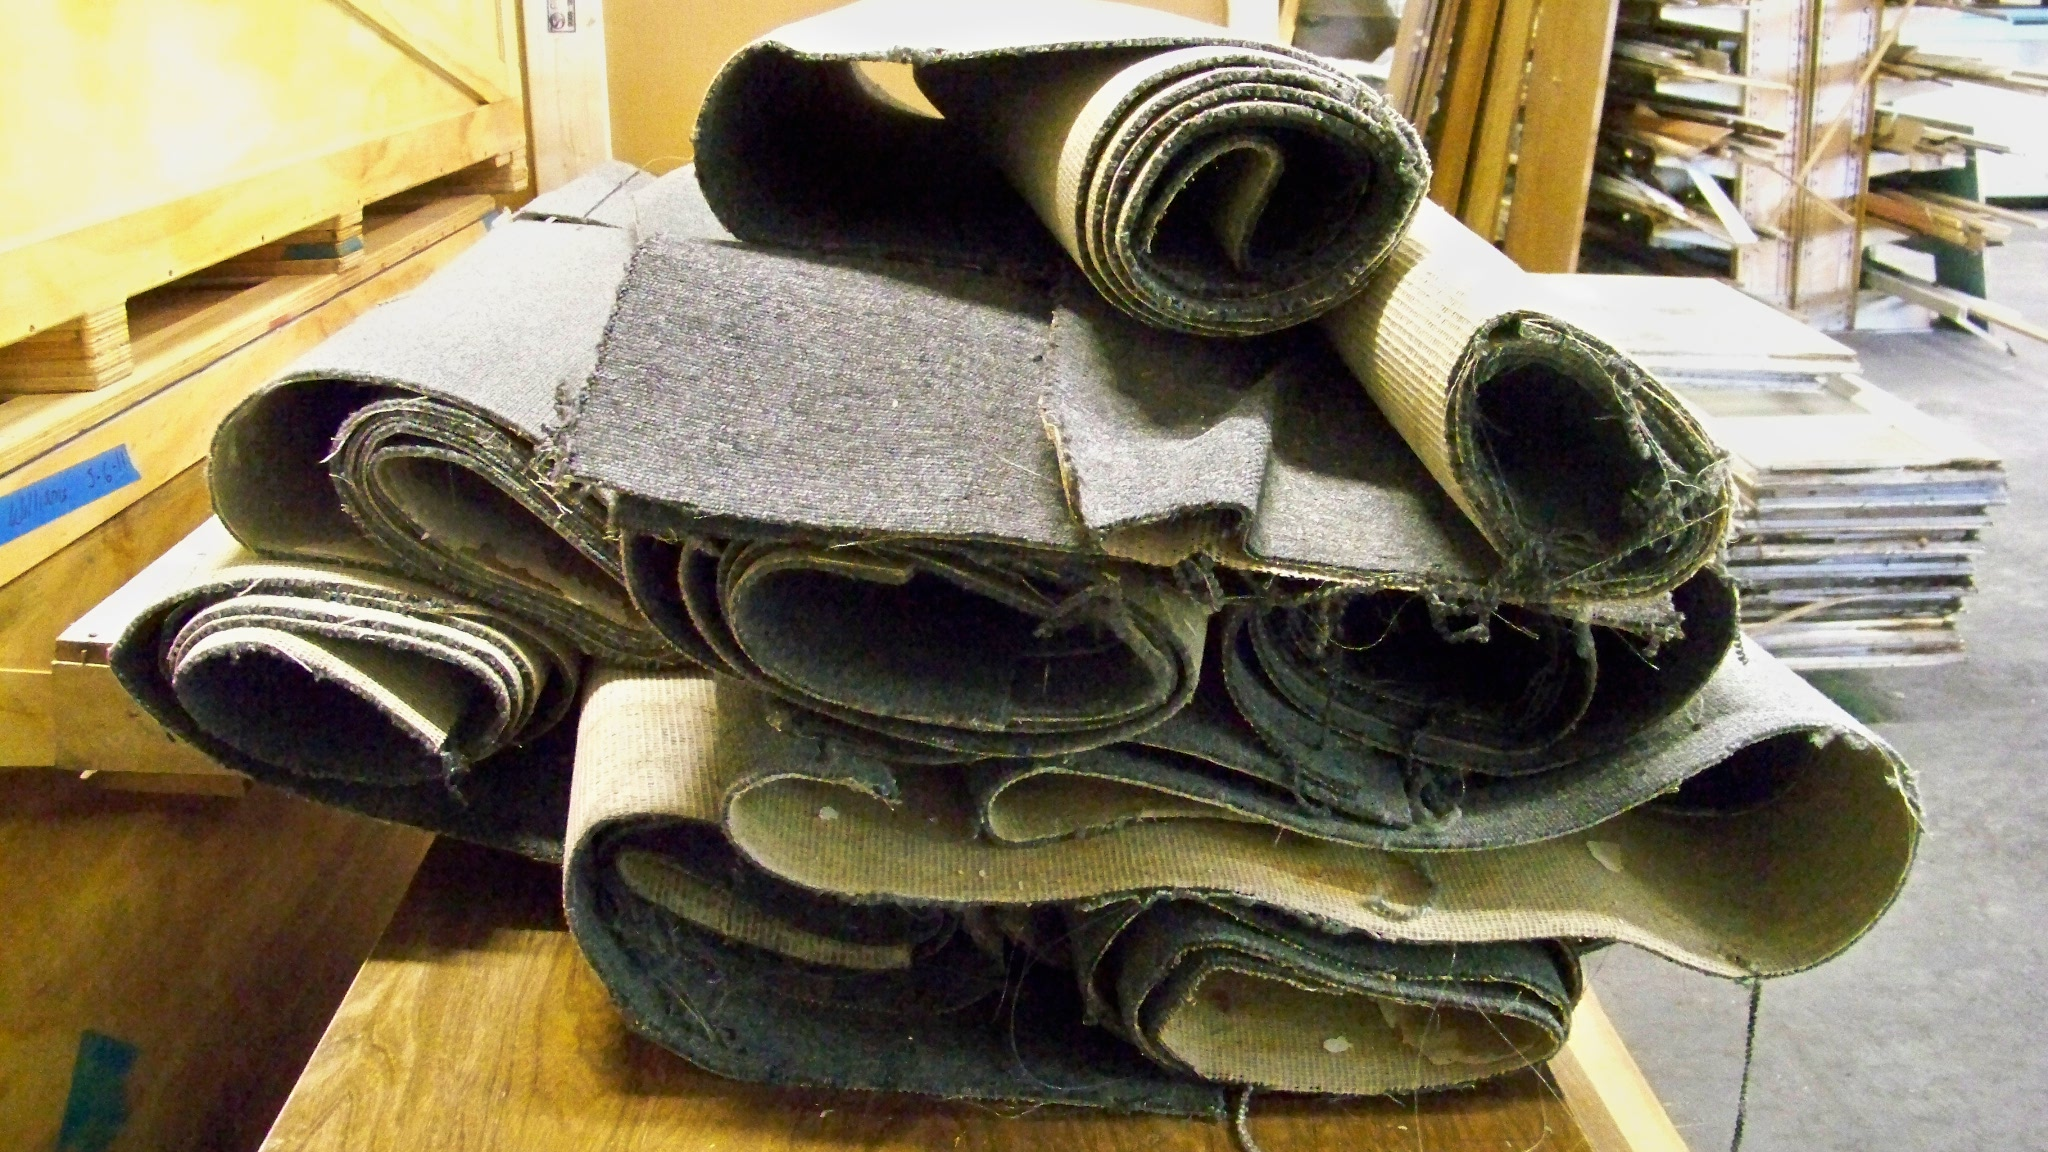 Recycling Carpets Turns into a Raw Material Opportunity